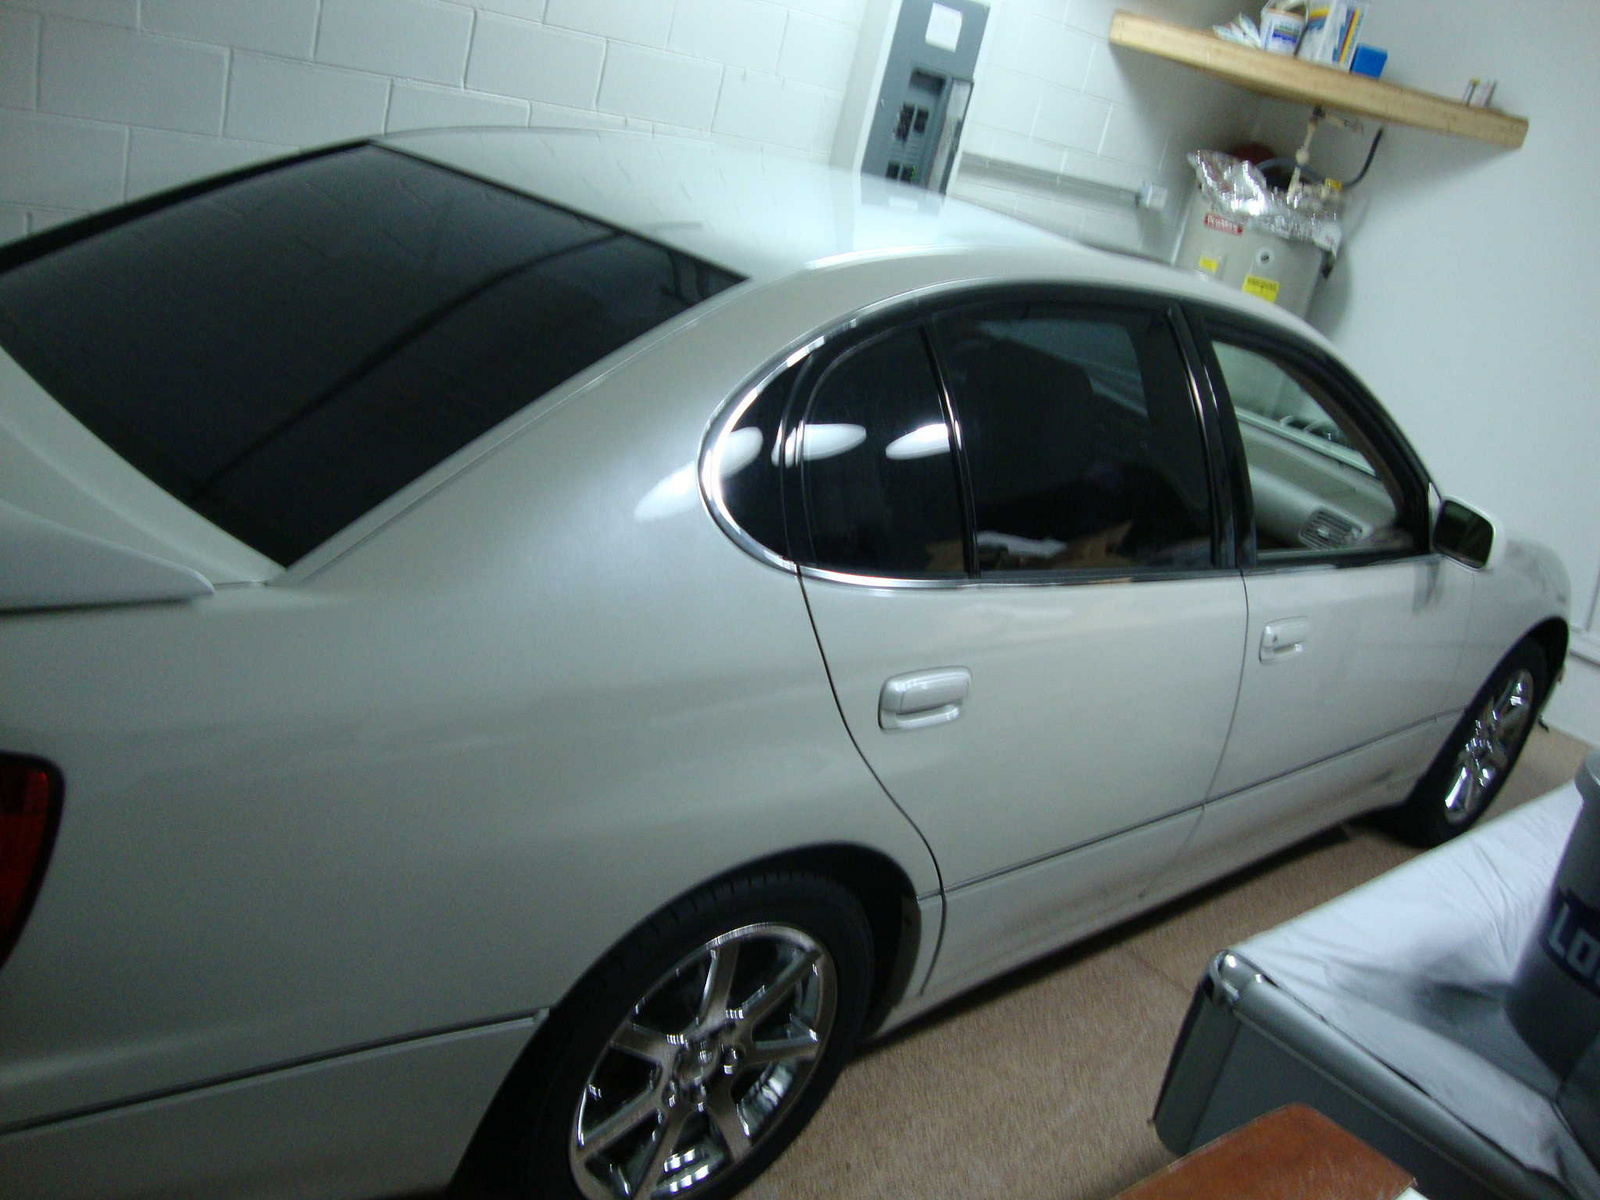 Picture of 2004 Lexus GS 430 Base